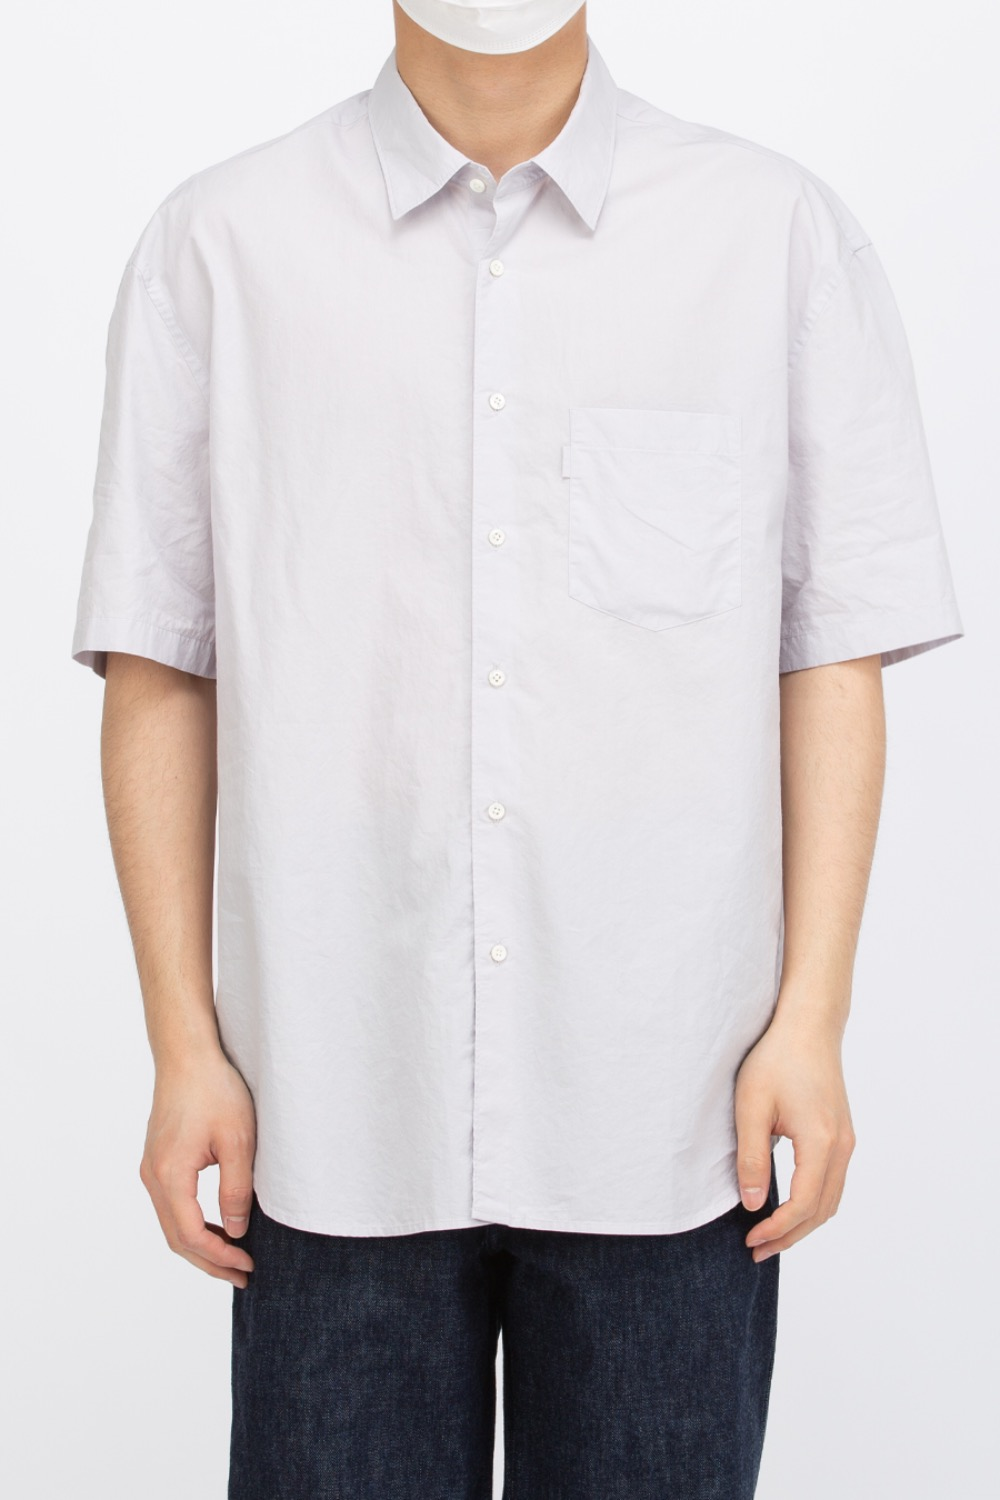 SHORT SLEEVE COMFORT SHIRT FLOWER